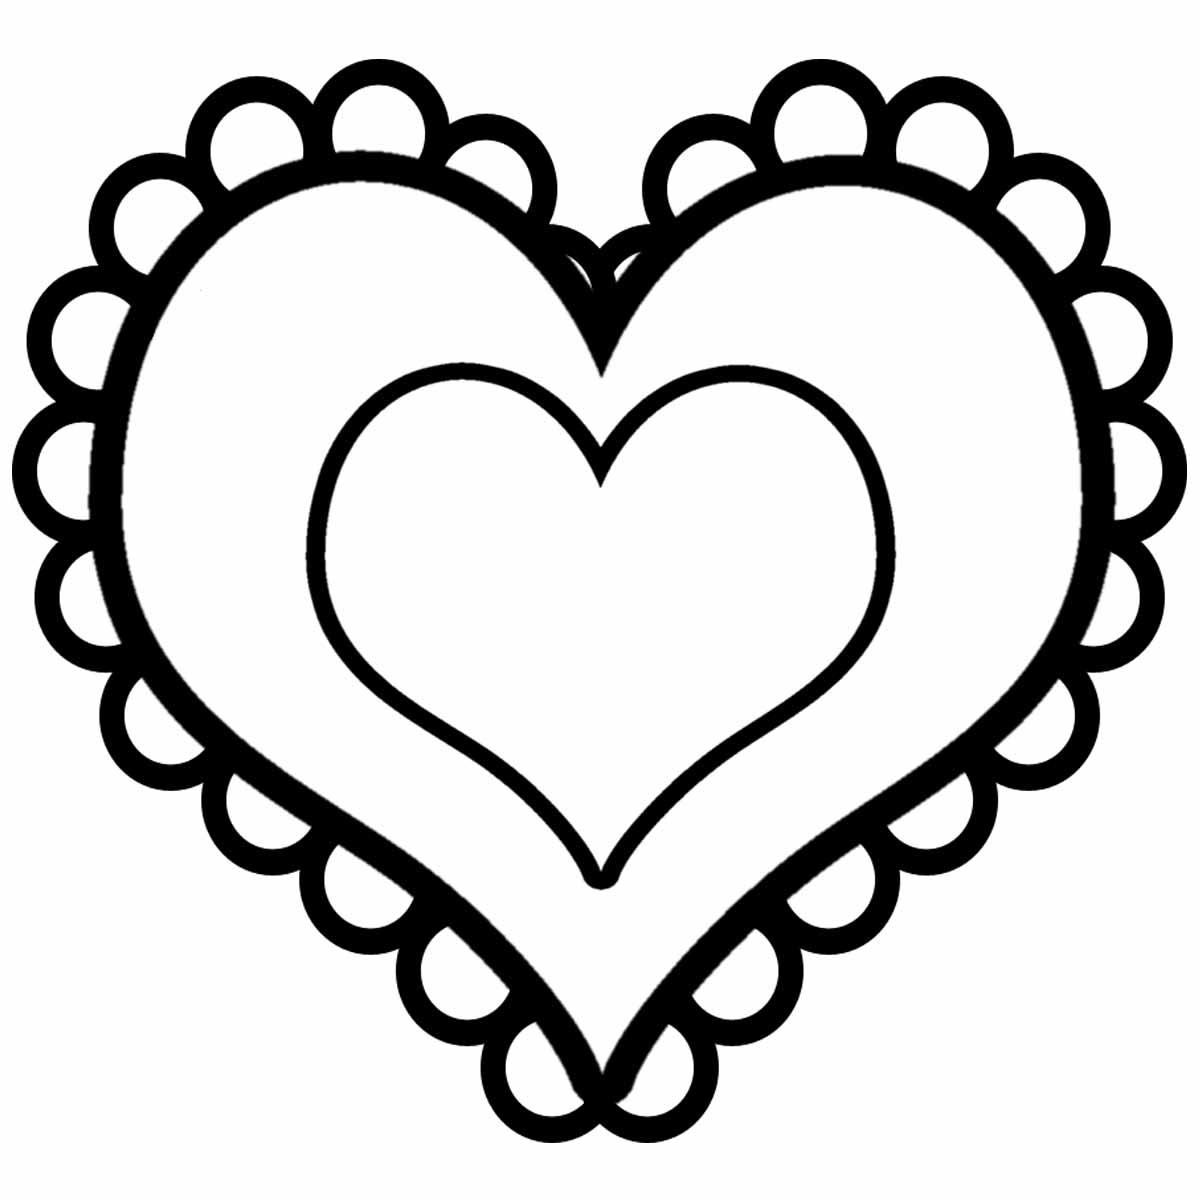 Coloring templates for cutting out hearts  double heart with lace for cutting paper